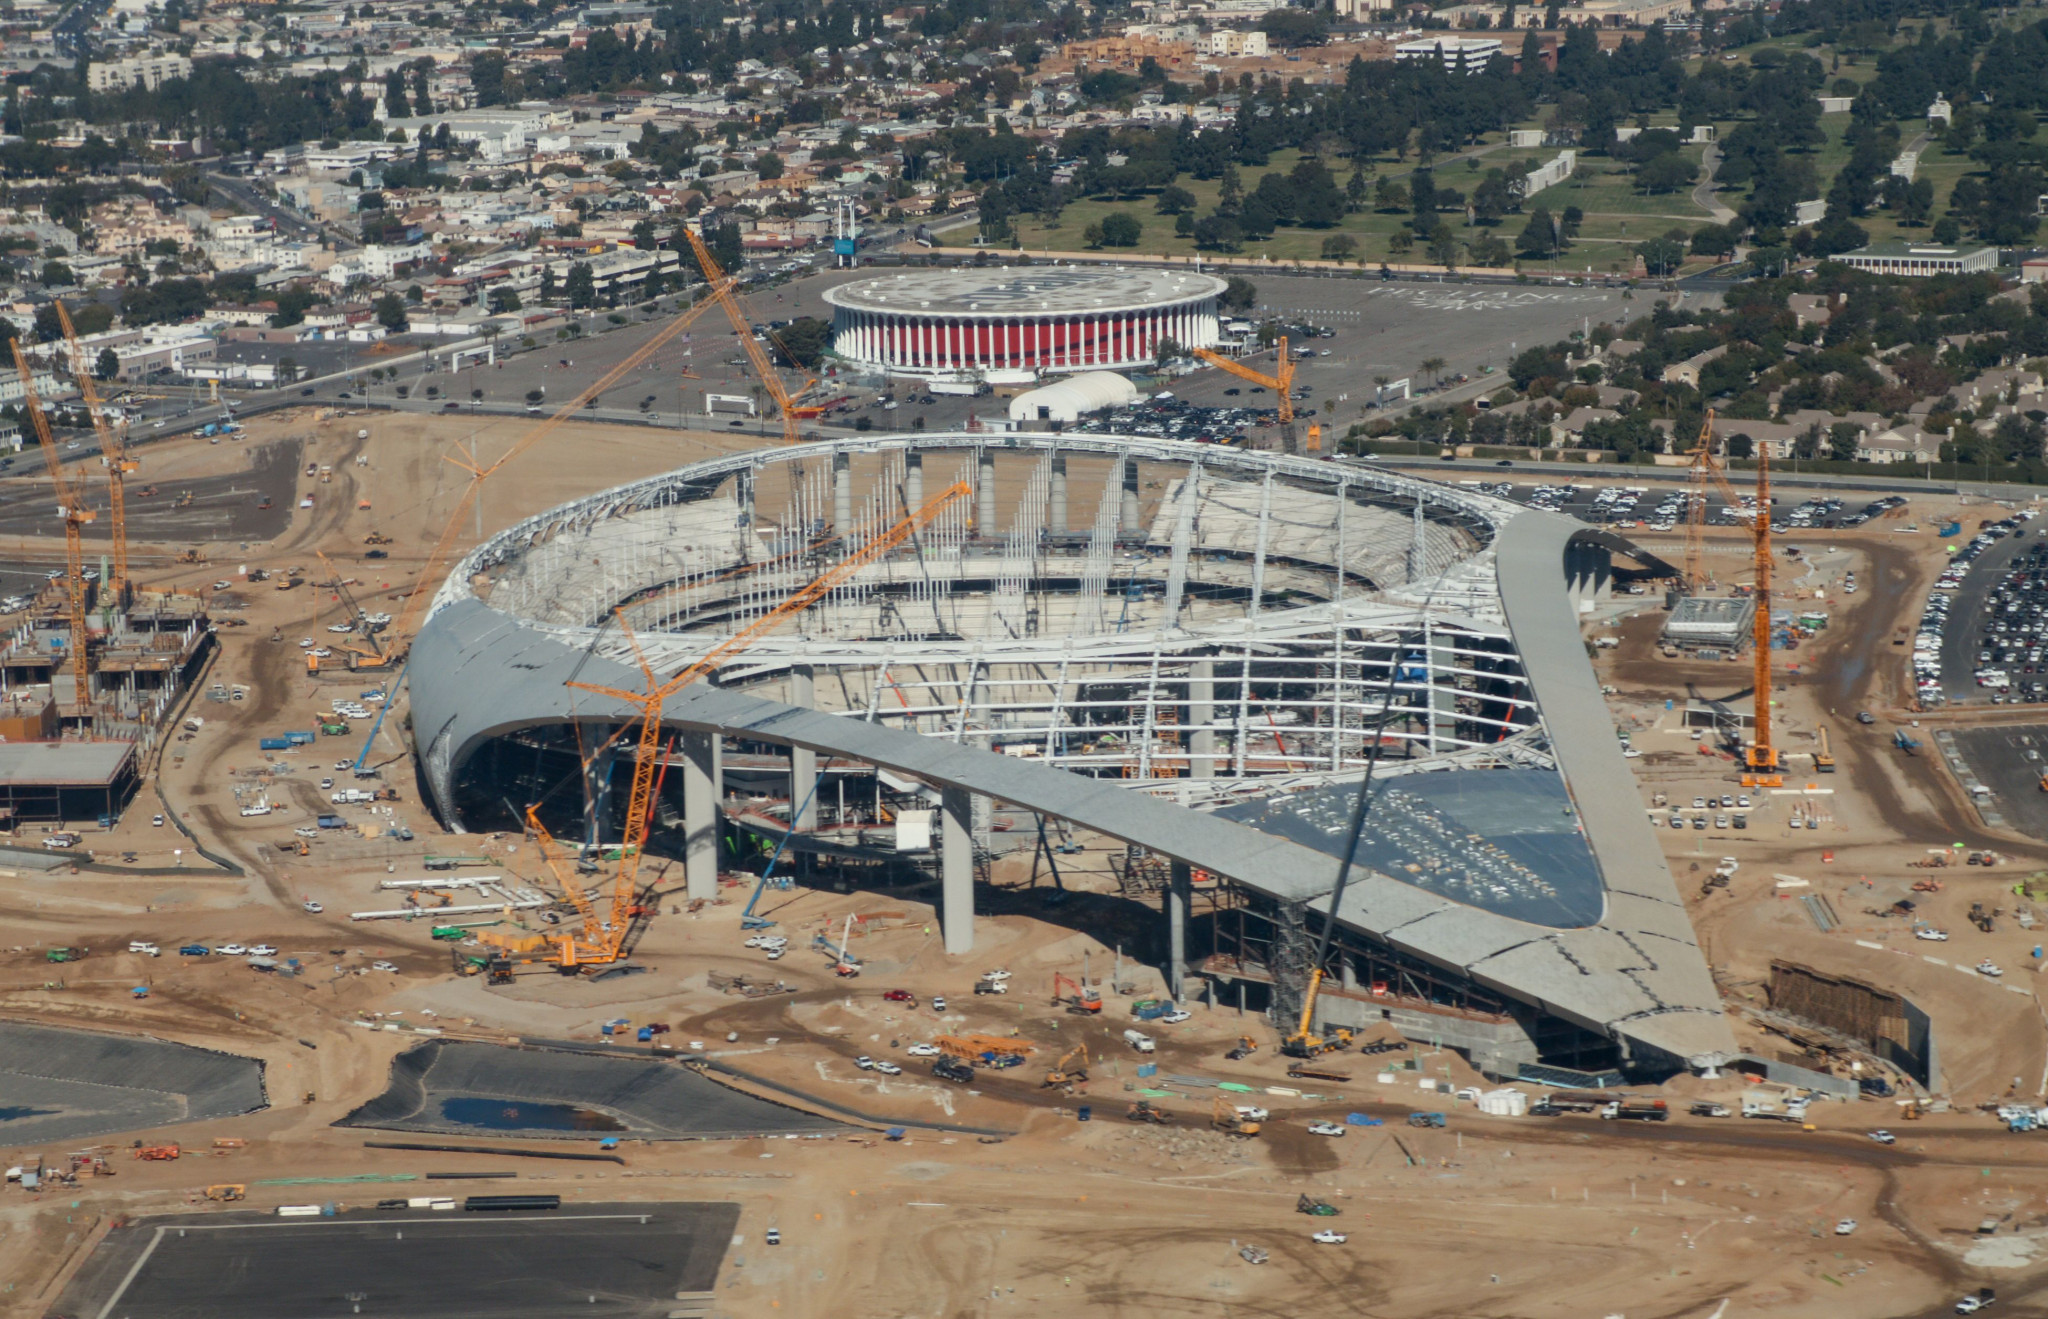 The new SoFi Stadium is due to host the 2022 Super Bowl - the biggest event in Los Angeles since the 1984 Olympics, and which will be a major warm-up for the 2028 Games ©Getty Images